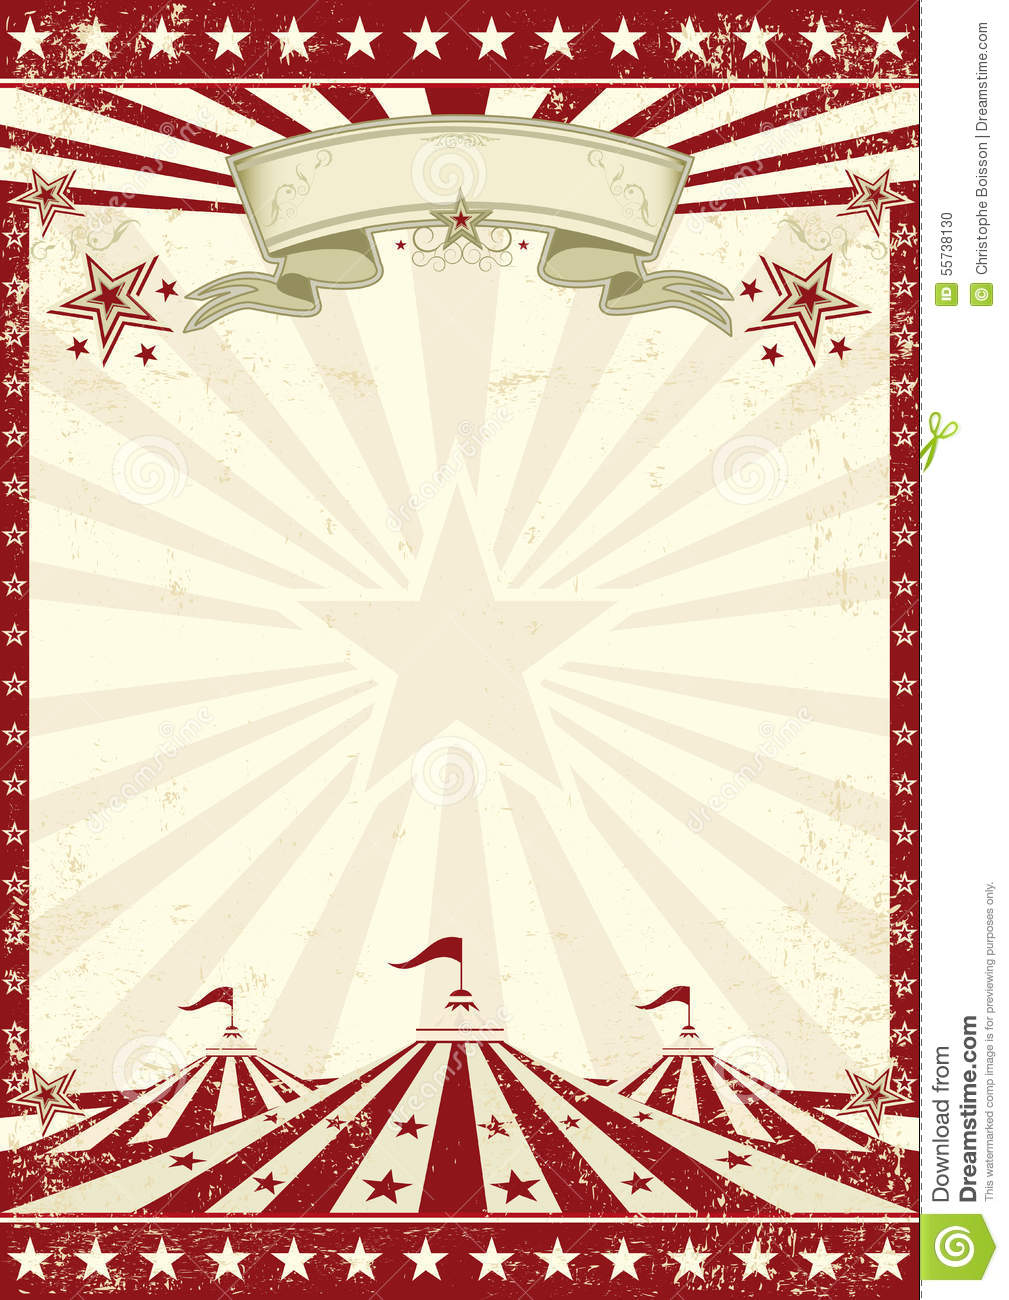 Vintage Circus Poster Background Circus grunge r...